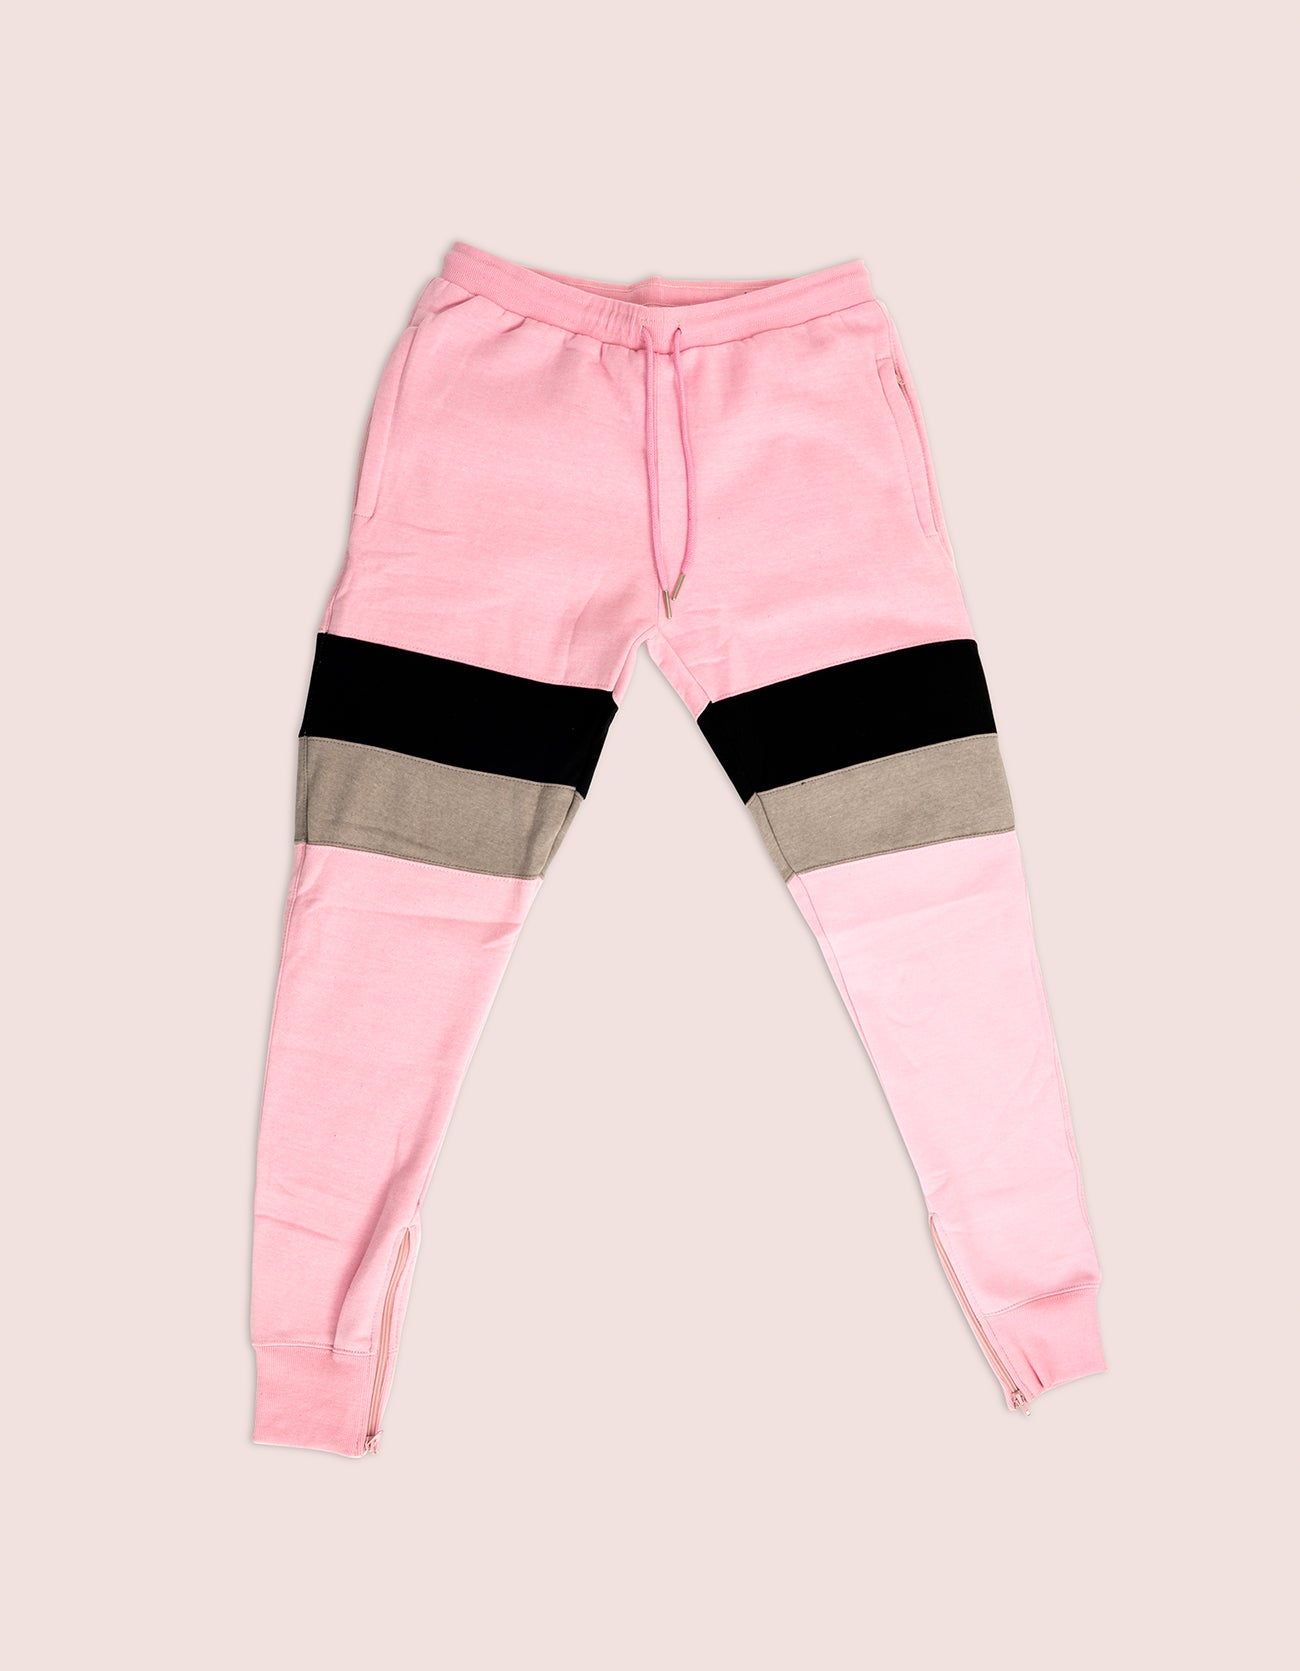 Dipset Couture Pink/Grey/Black Sweatsuit